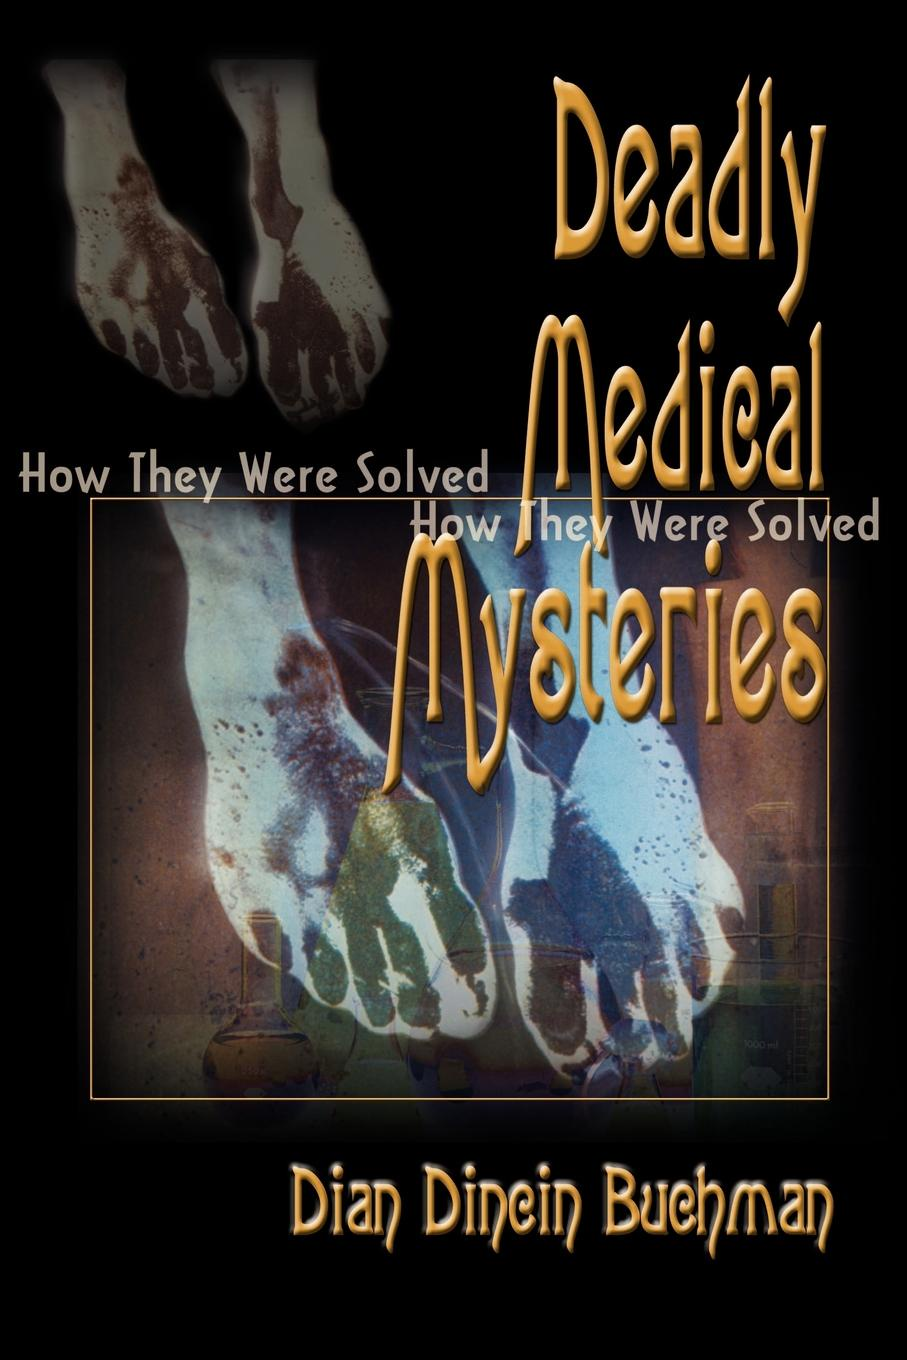 Deadly Medical Mysteries. How They Were Solved. Dian Dincin Buchman